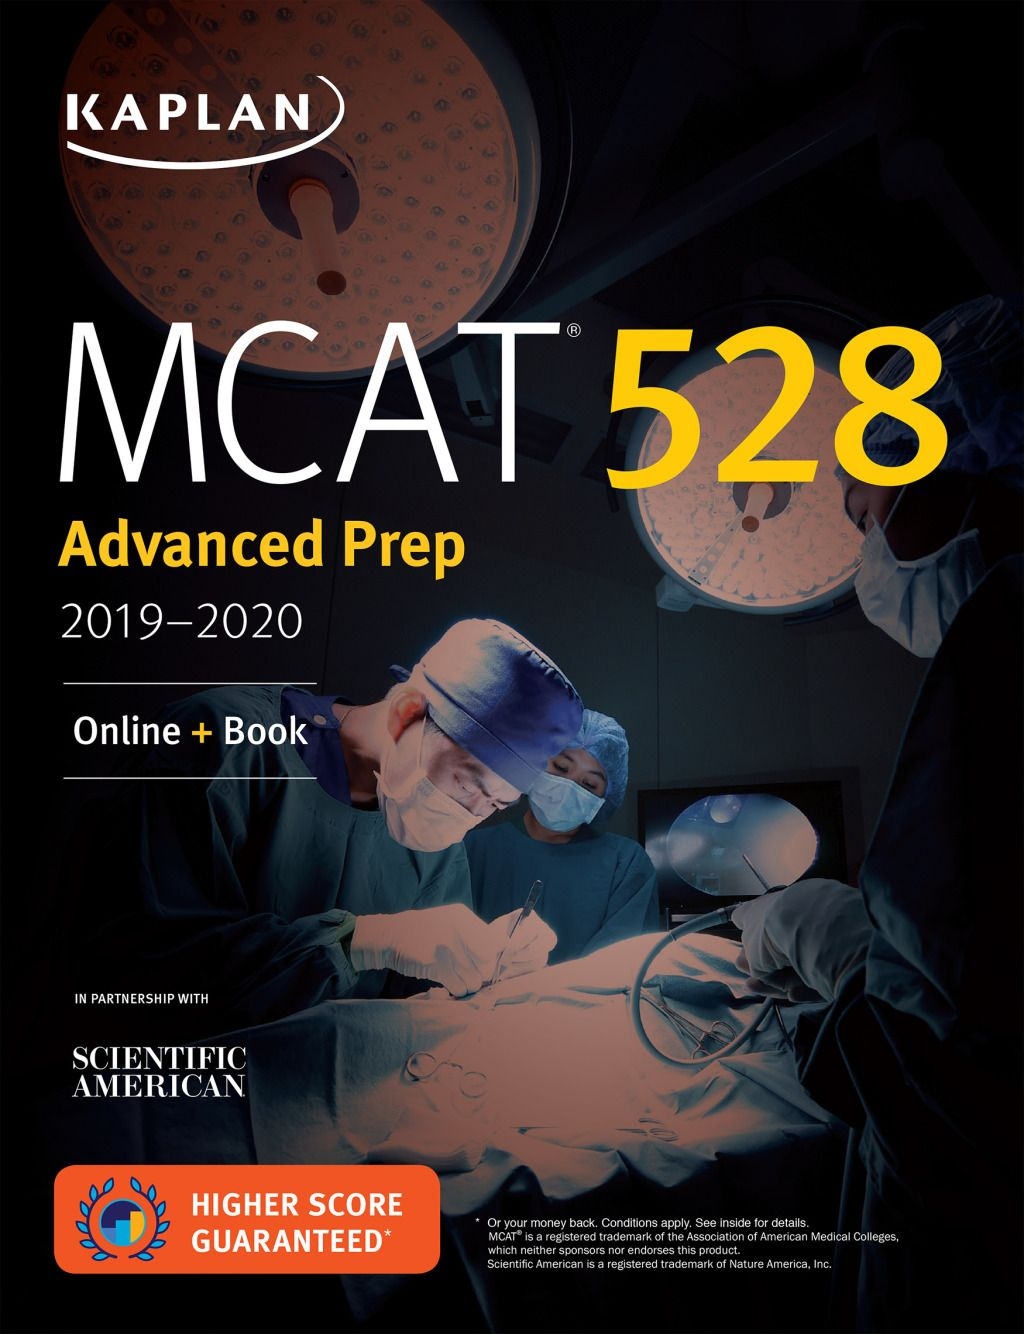 MCAT 528 Advanced Prep 20192020 (eBook) (With images